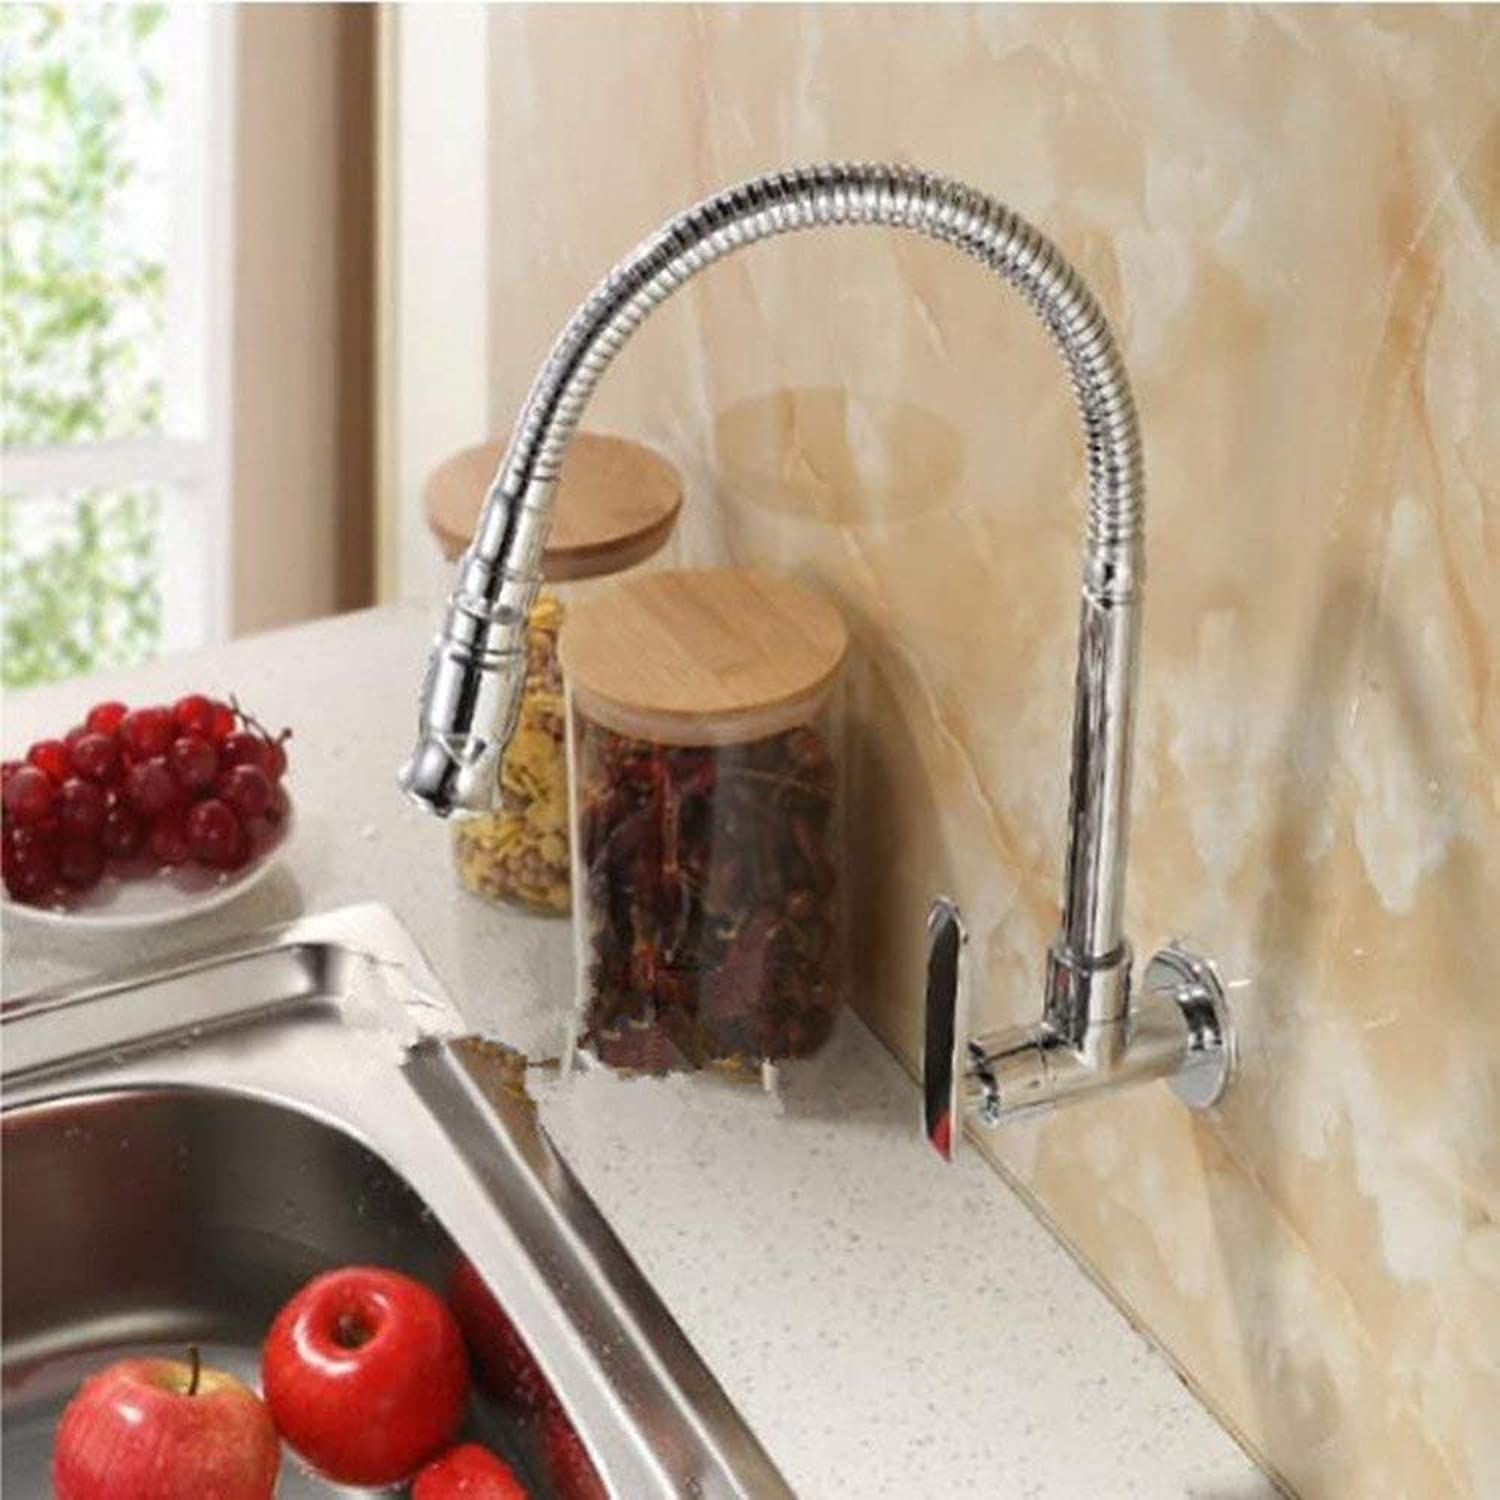 360° redating Faucet Retro Faucetkitchen Balcony Common Faucet Single Cold in-Wall Type Universal redation Brass Casting